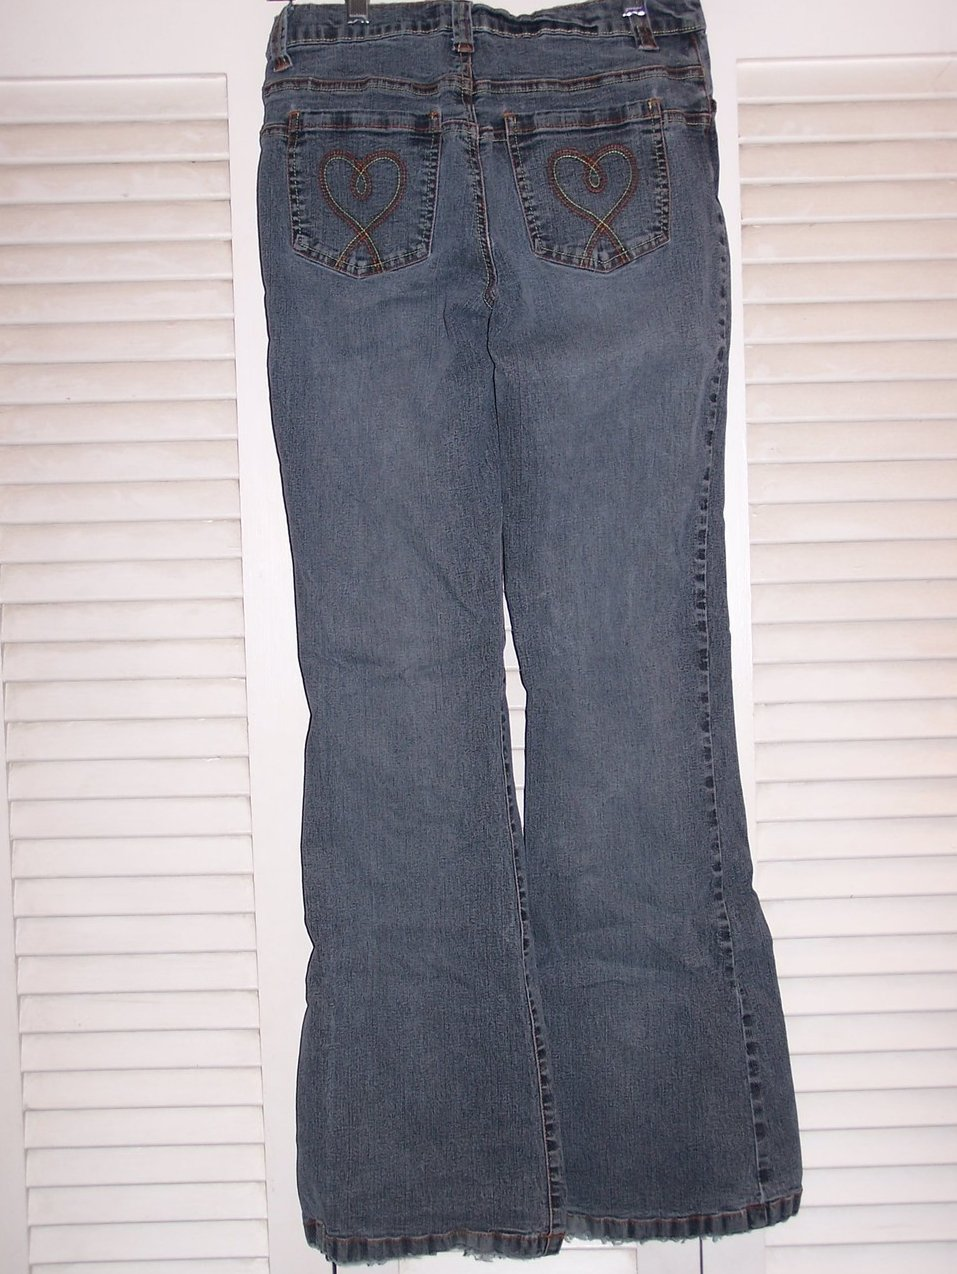 Jrs size so stretch jeans w great pocket embroidery